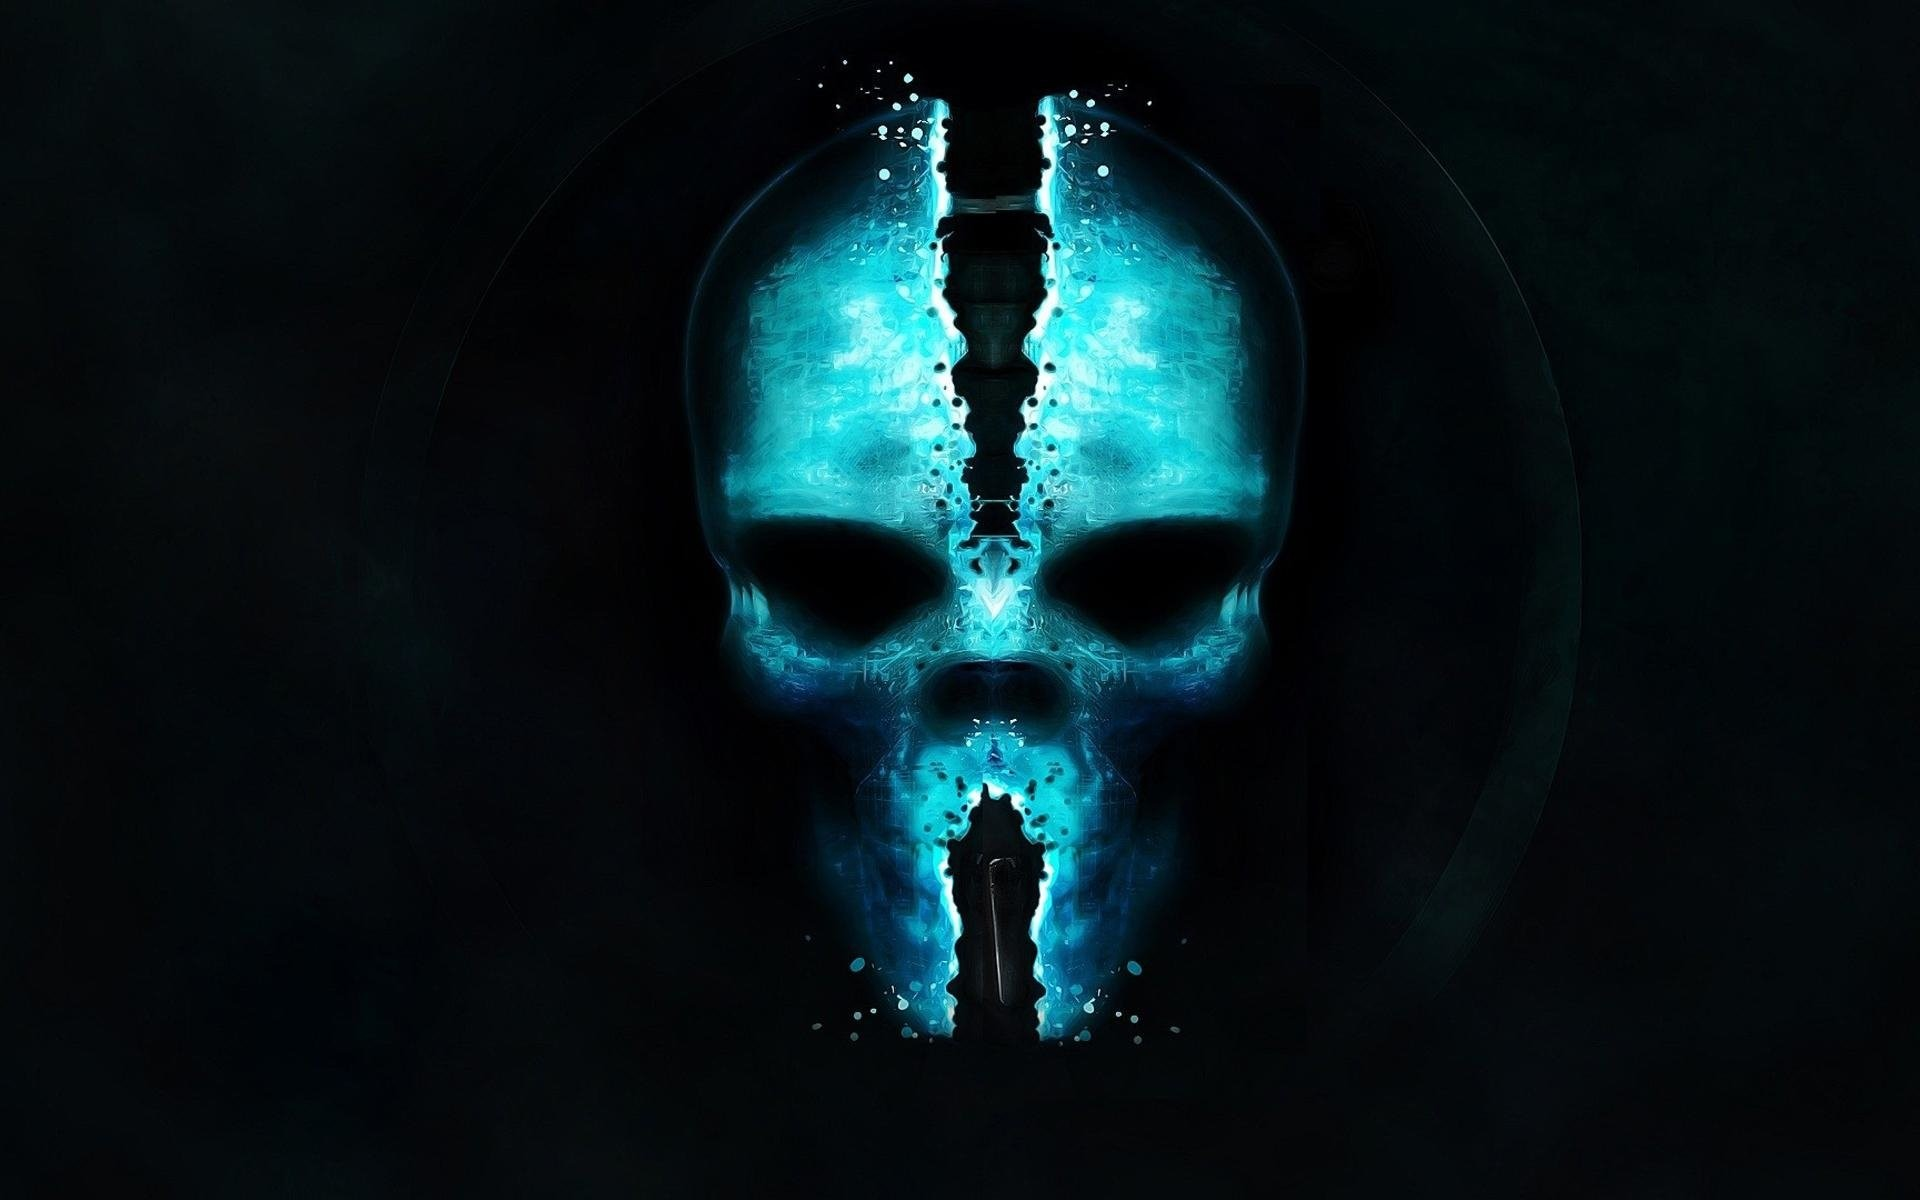 Ghost Recon Skull Wallpaper 1